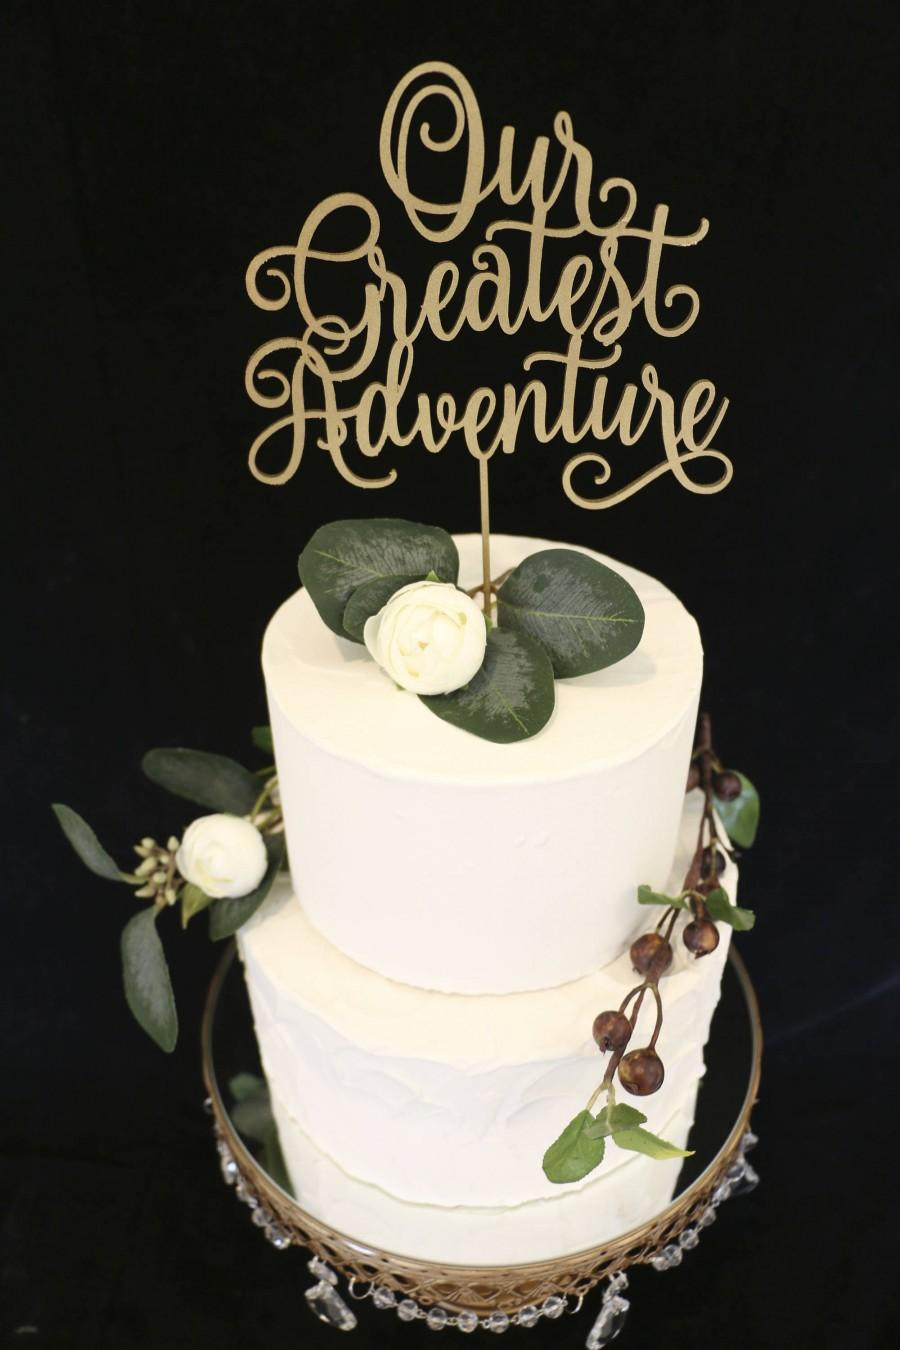 Wedding - Our Greatest Adventure Wedding Cake Topper- Metallic Gold